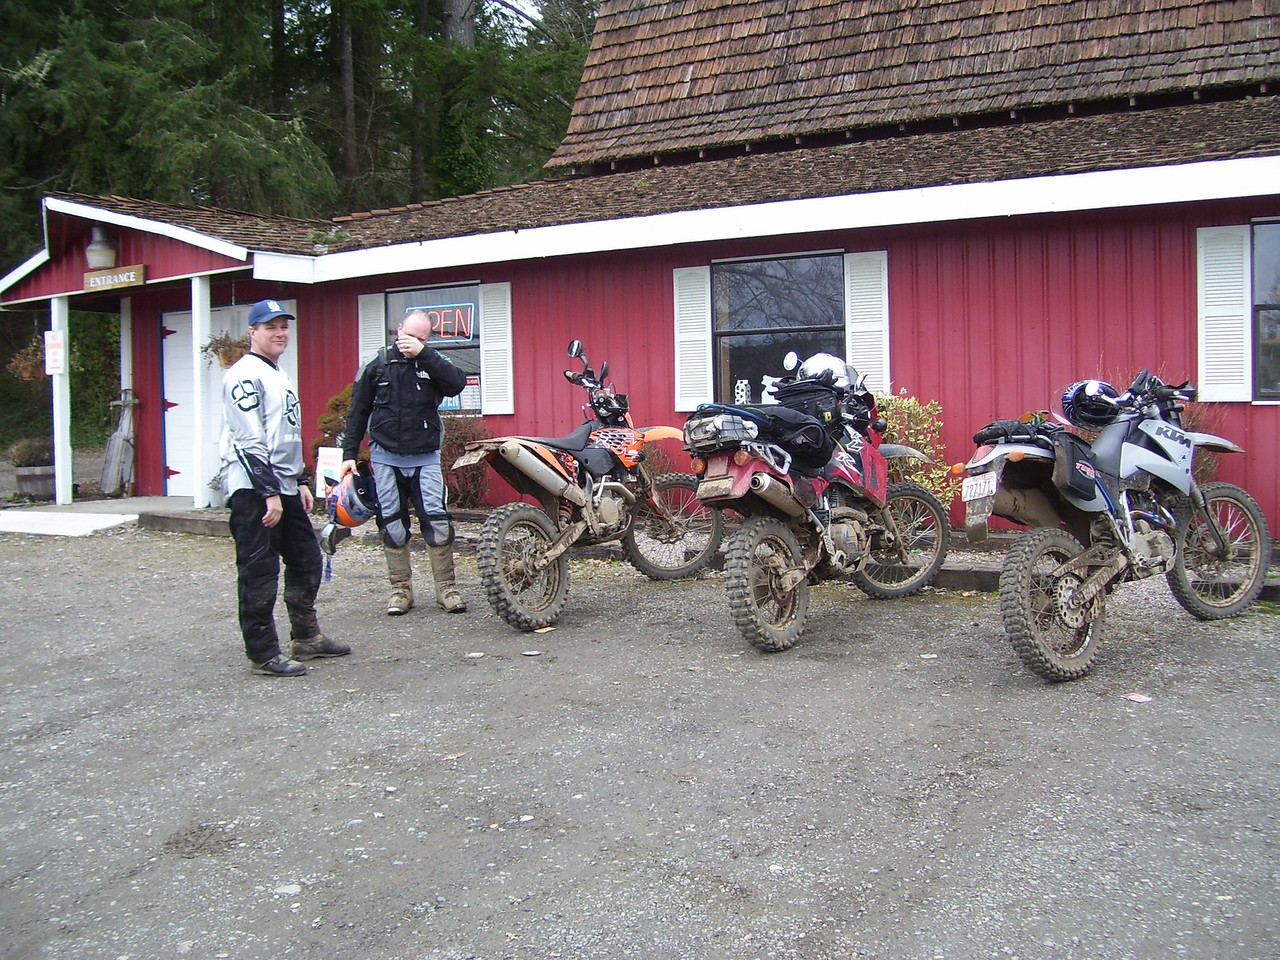 Lunch stop at the Little Red Barn. Marc rode his KLR, door to door, in the freezing weather.